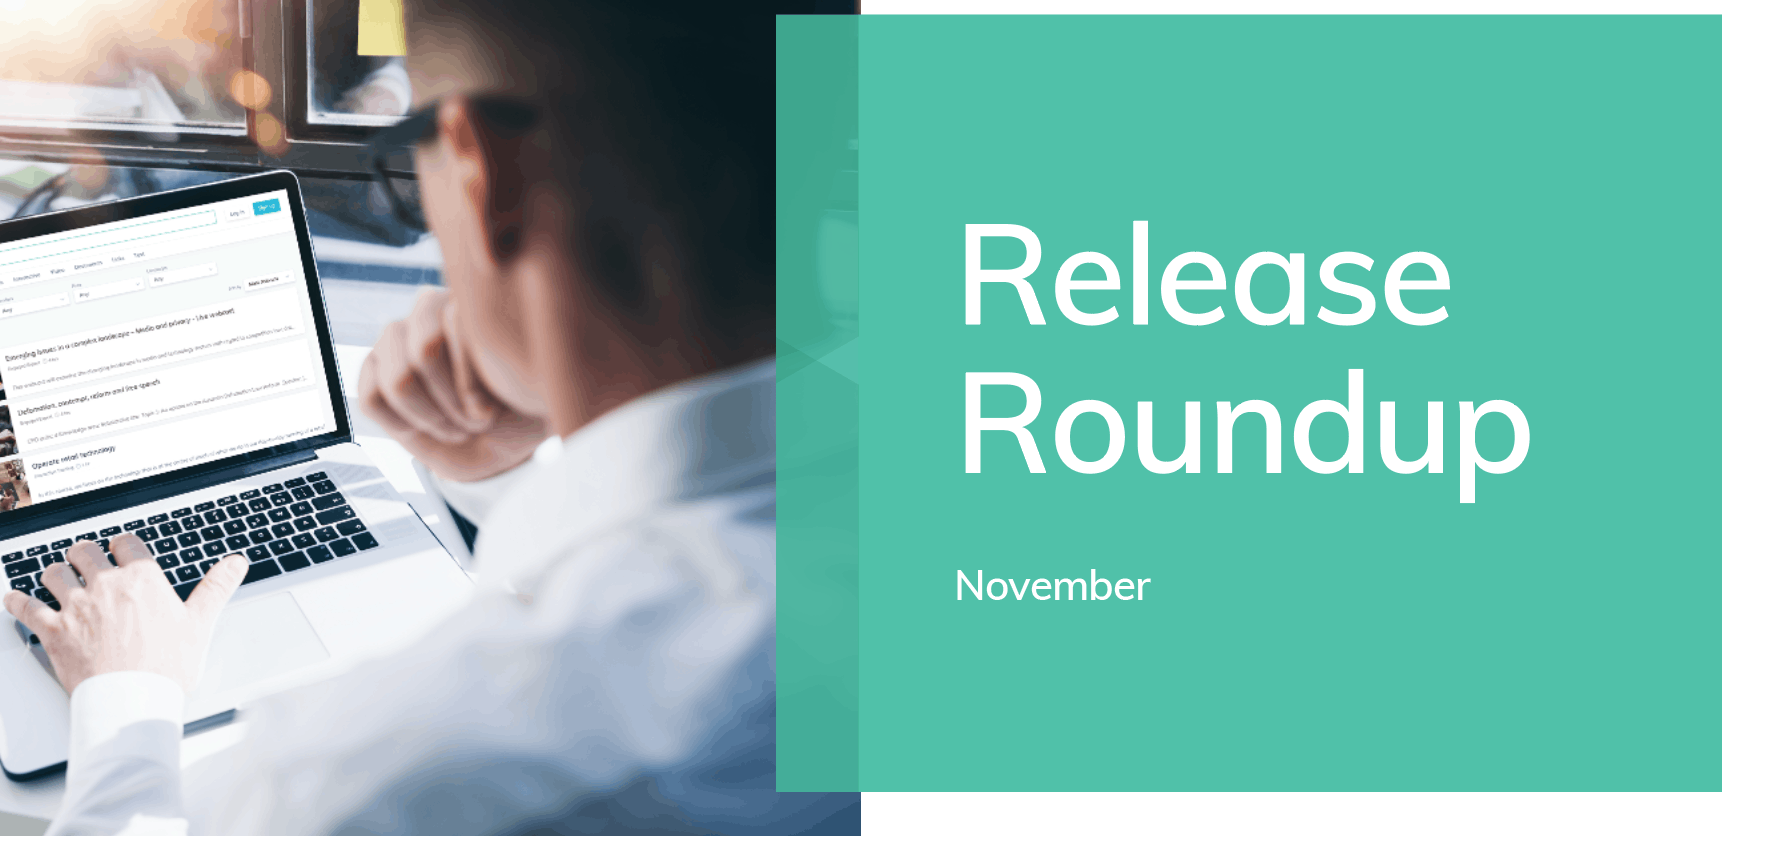 GO1 Product update: catch up on all the exciting new features launching in November 🚀